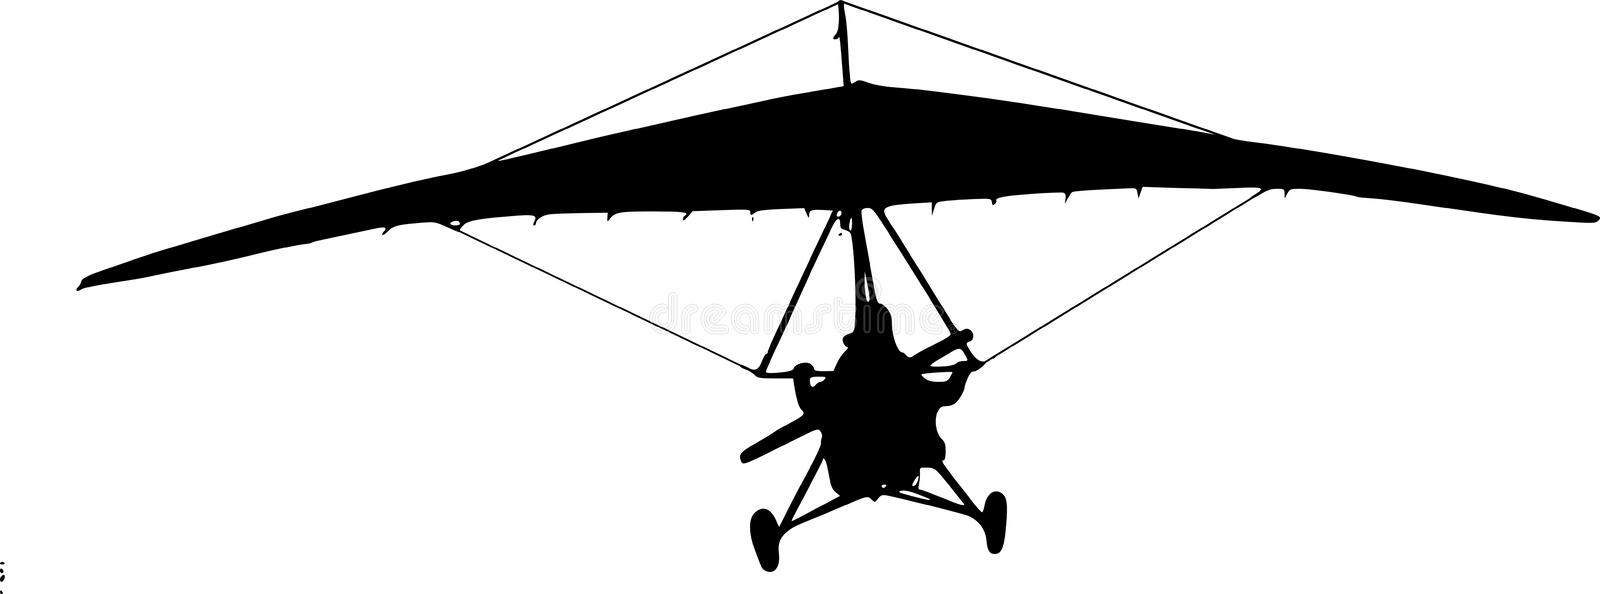 Hang-glider Stock Photo